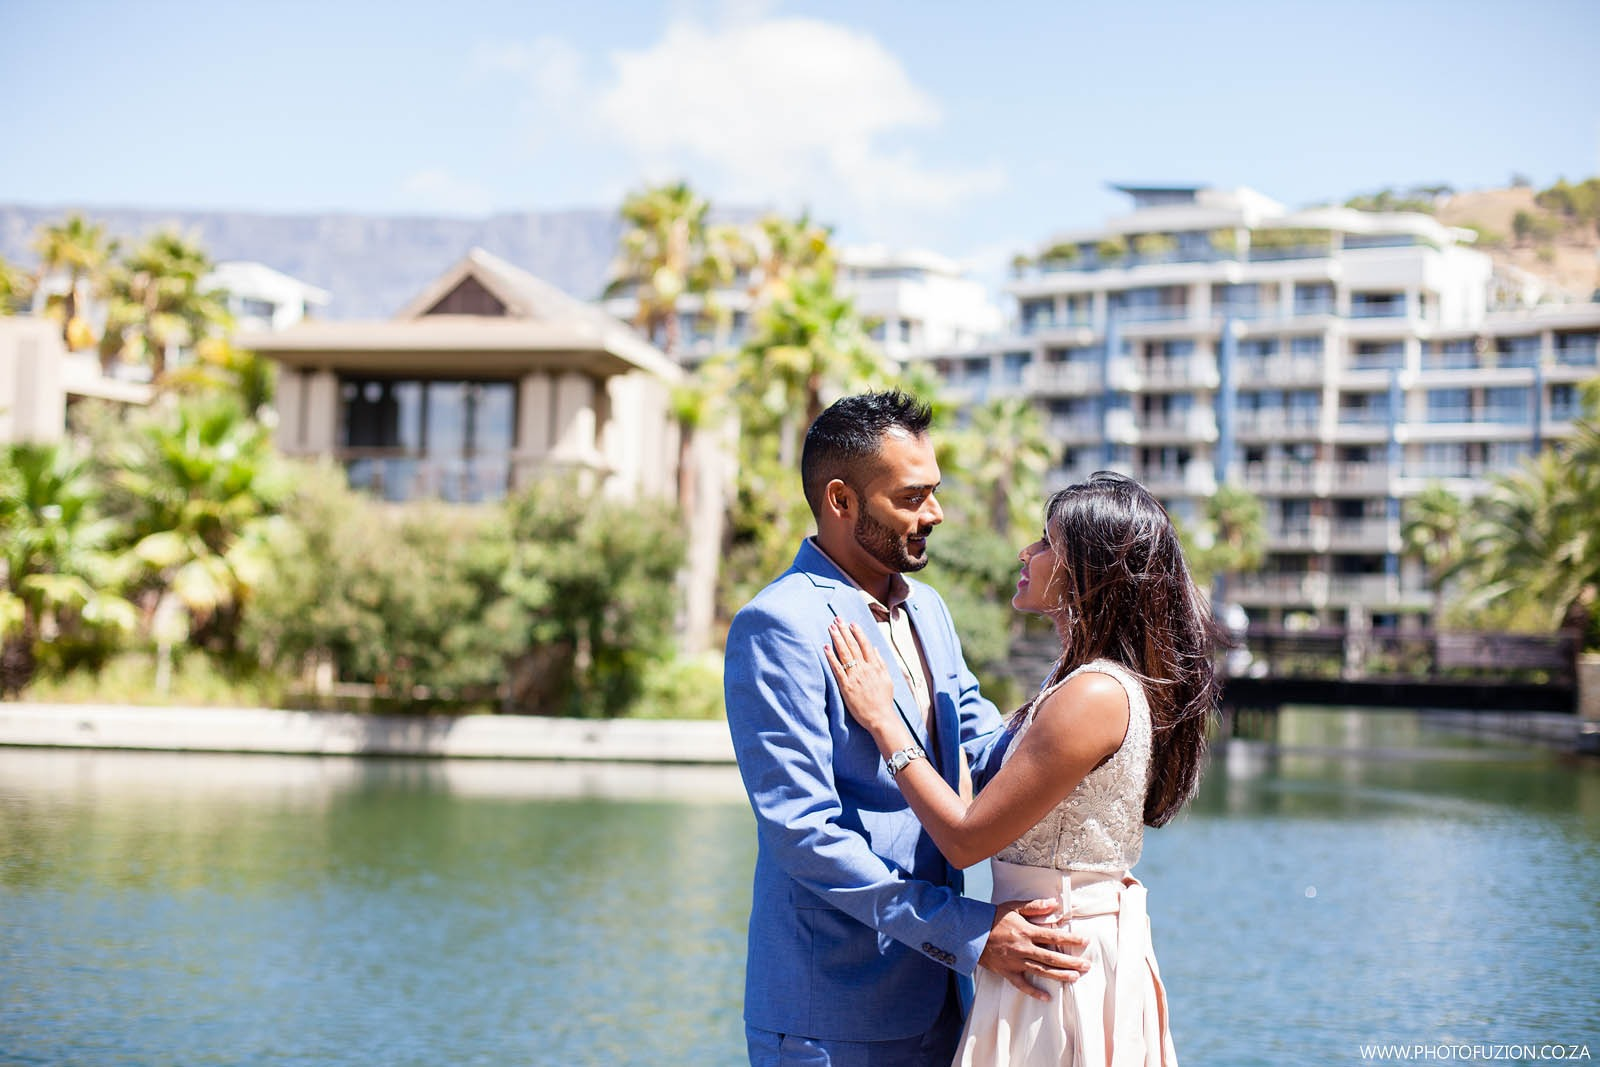 Rajesan and Thenesha One & Only Proposal